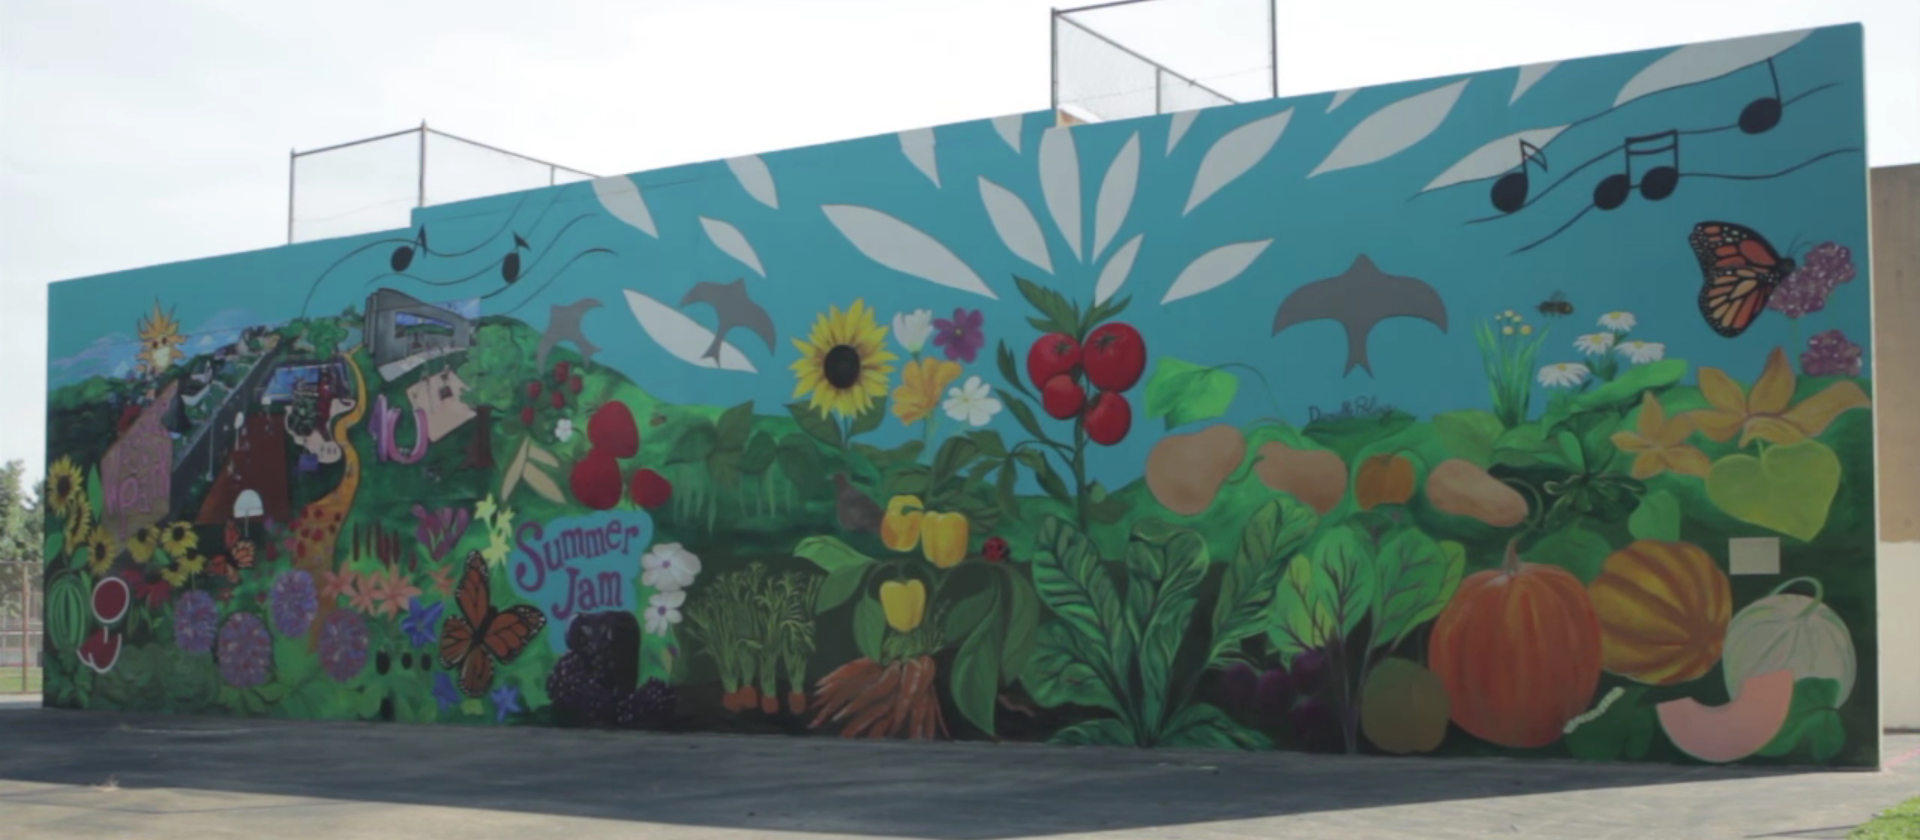 Top 10 stories from broad high season 4 wosu public media for Mural garden